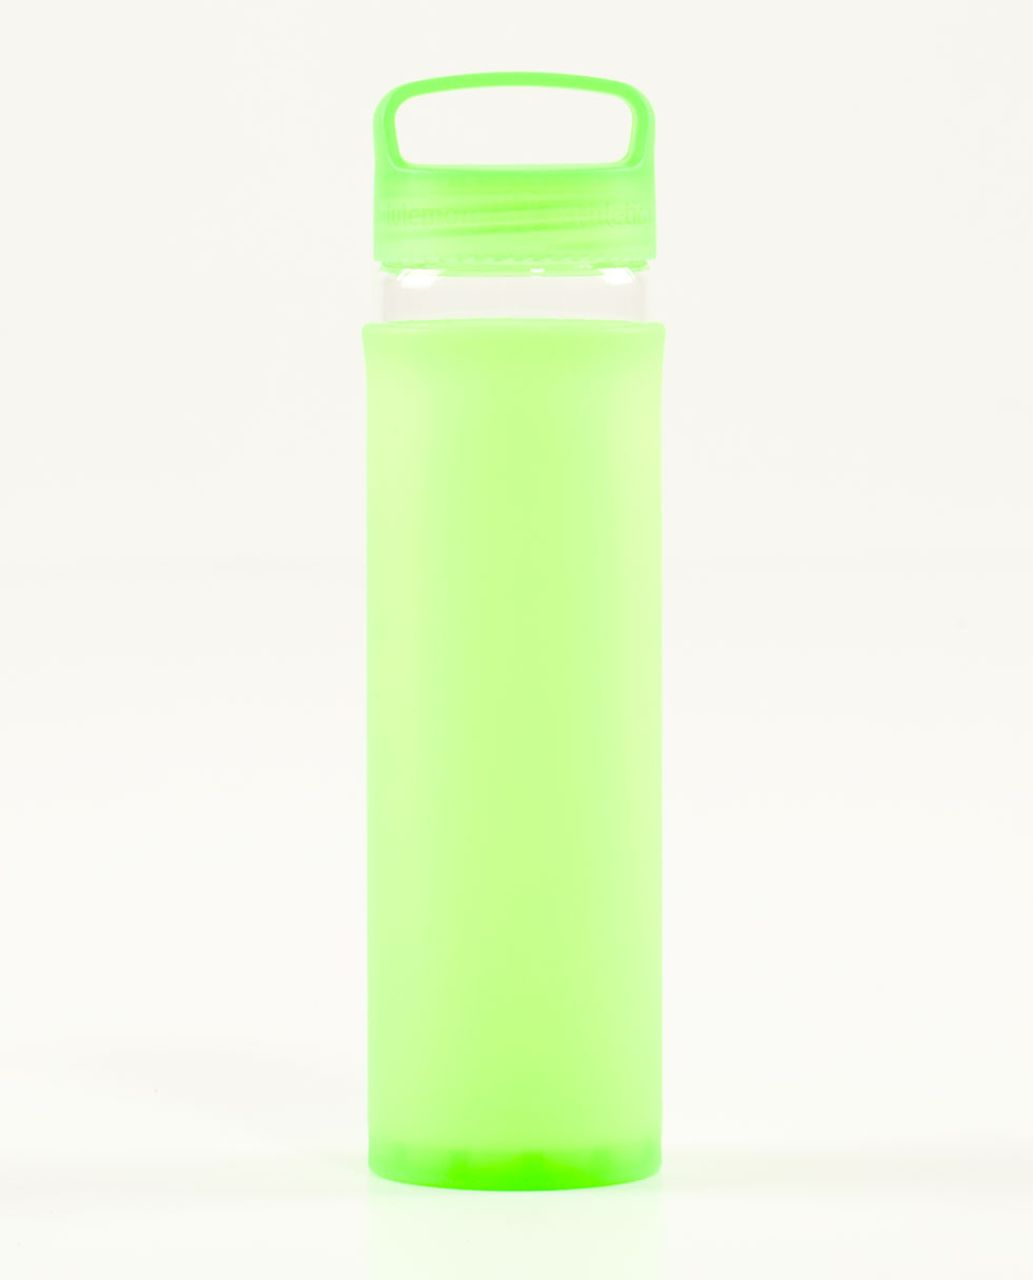 Lululemon Pure Balance Water Bottle - Zippy Green